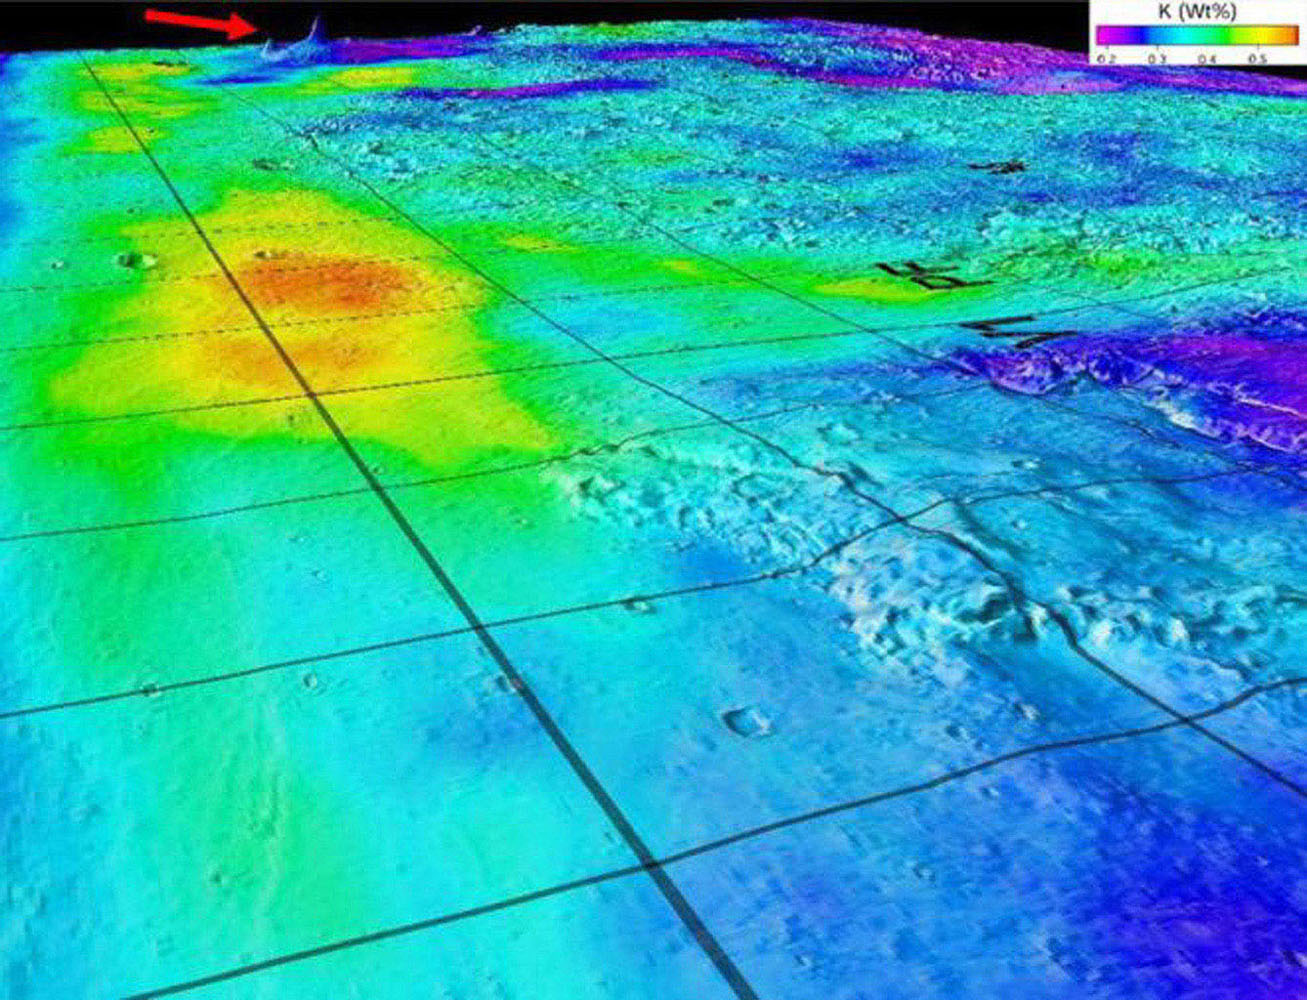 This image superimposes Gamma-Ray Spectrometer data from NASA's Mars Odyssey orbiter onto topographic data from the laser altimeter on NASA's Mars Global Surveyor. The red arrow indicates the shield volcanoes of Elysium rise in northern Mars.